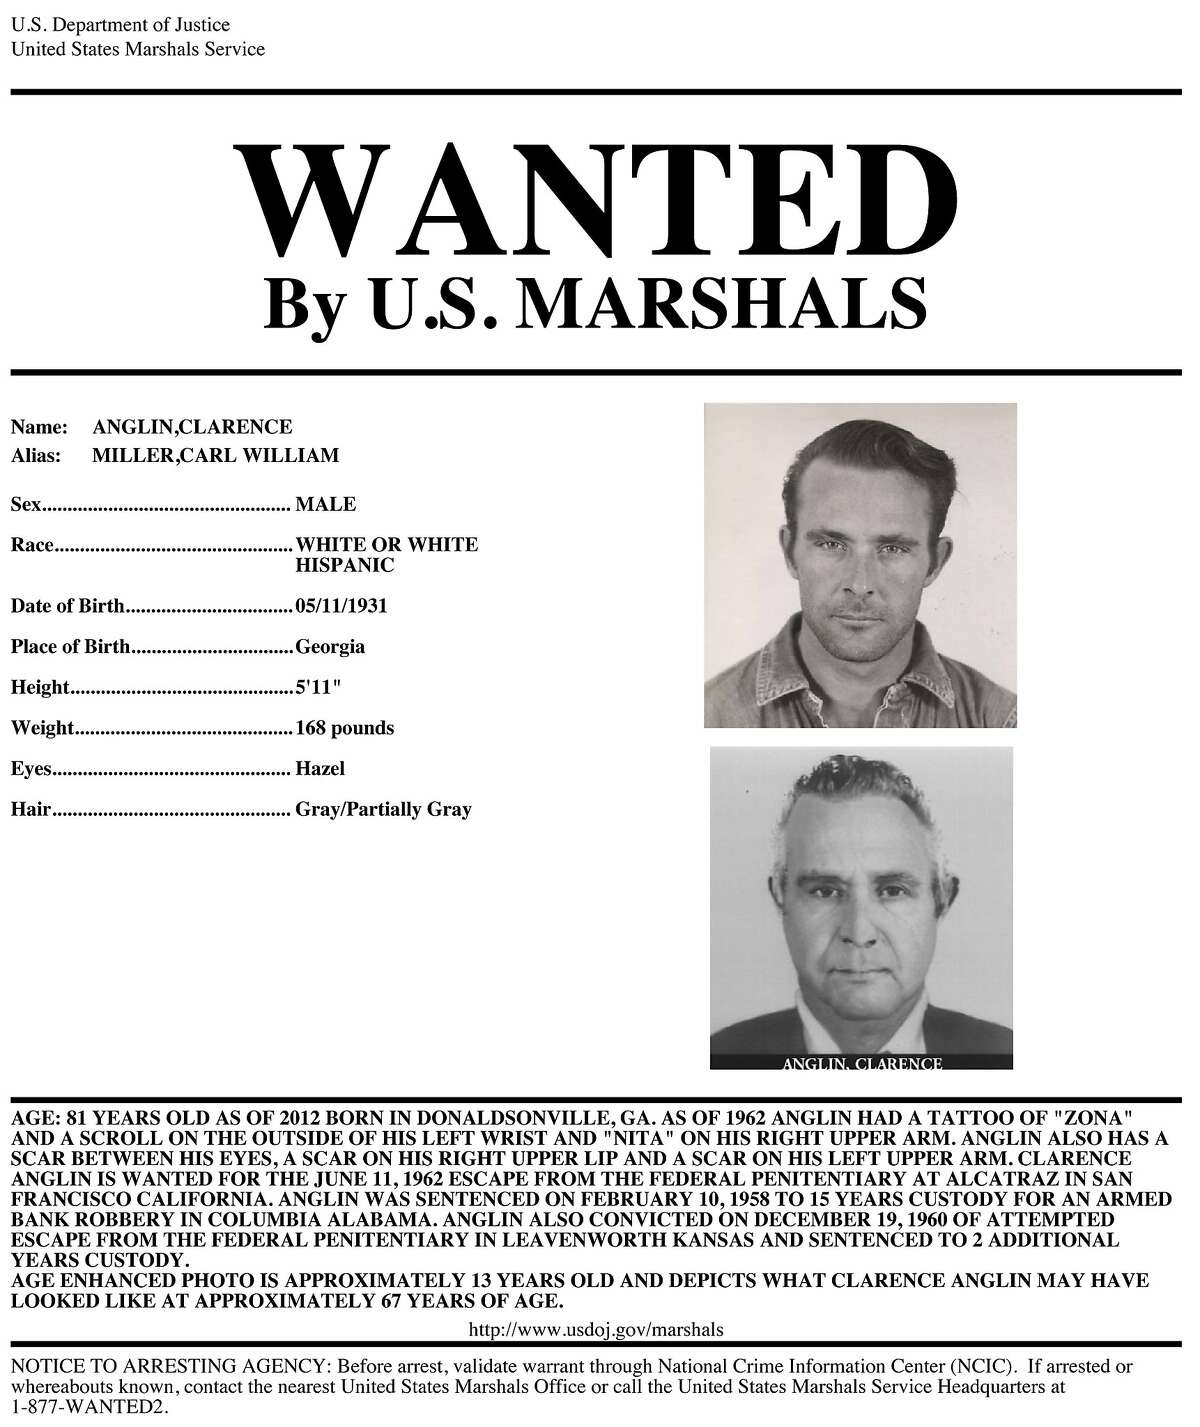 A wanted poster for renowned Alcatraz escappe Clarence Anglin. Anglin, along with his brother John Anglin and Frank Morris escaped from Alcatraz on June 11, 1962. They remain unaccounted for.